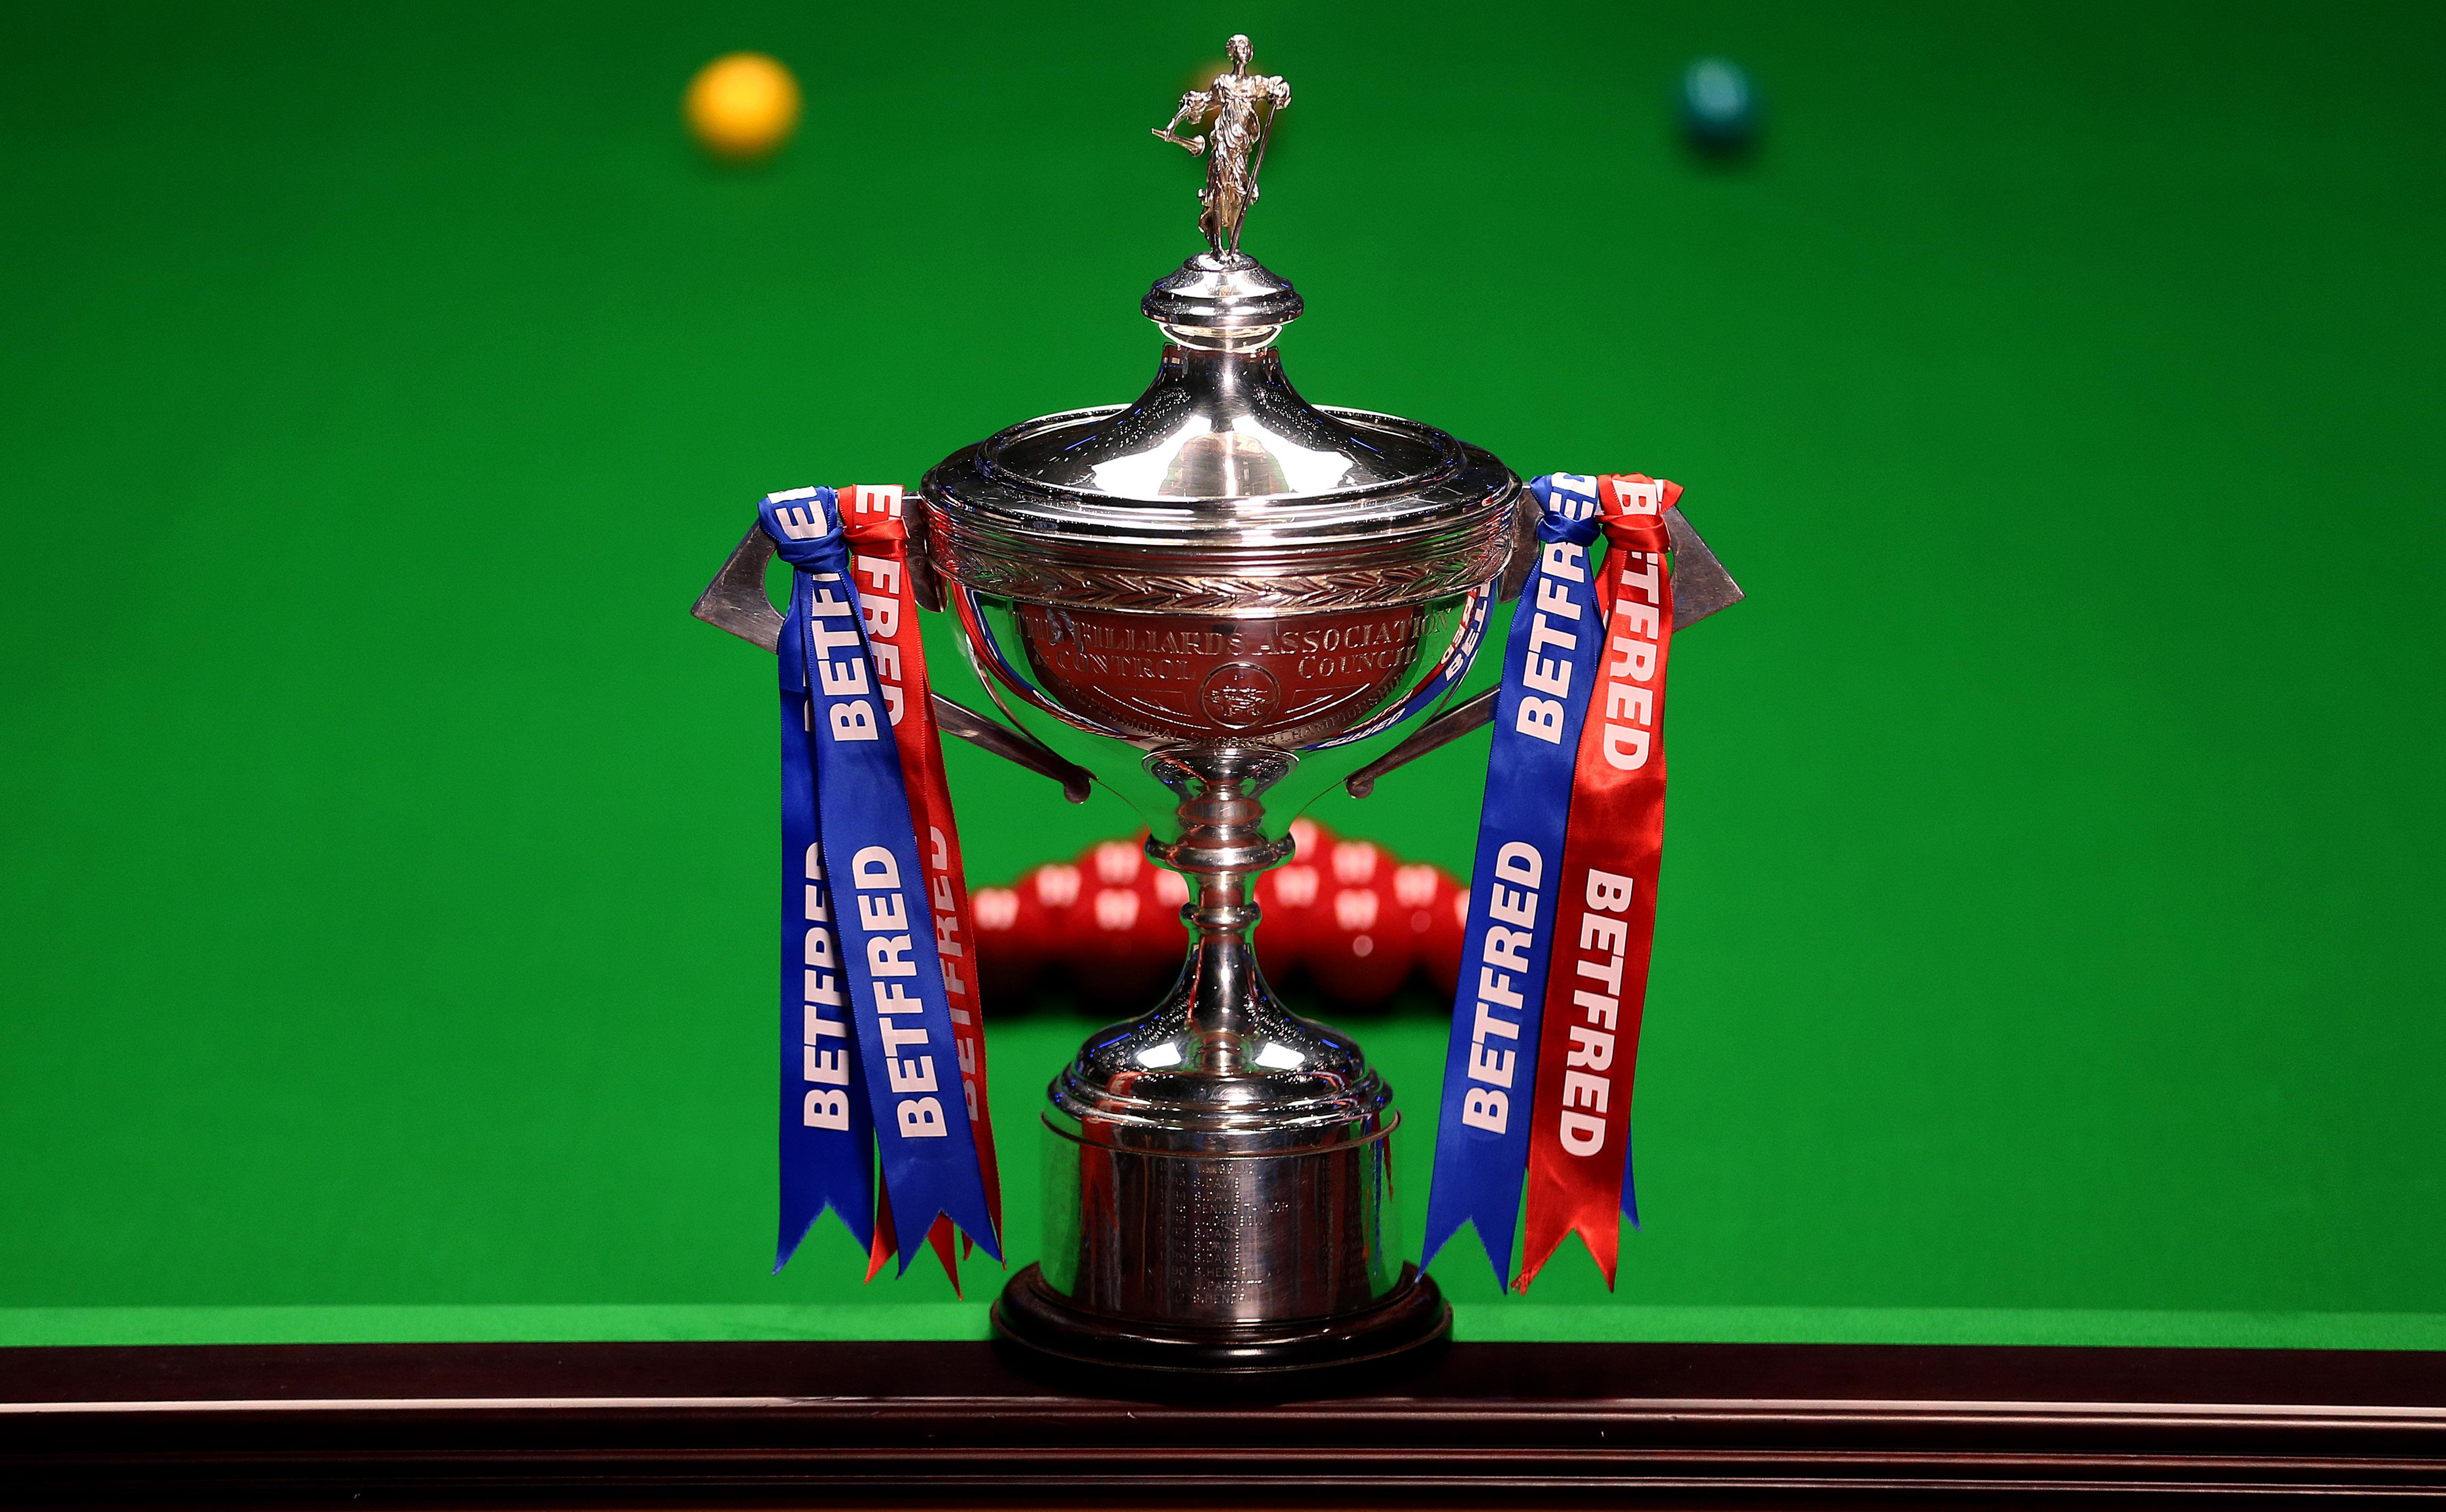 The World Snooker Championships starts on Saturday with Mark Selby fighting to retain his title